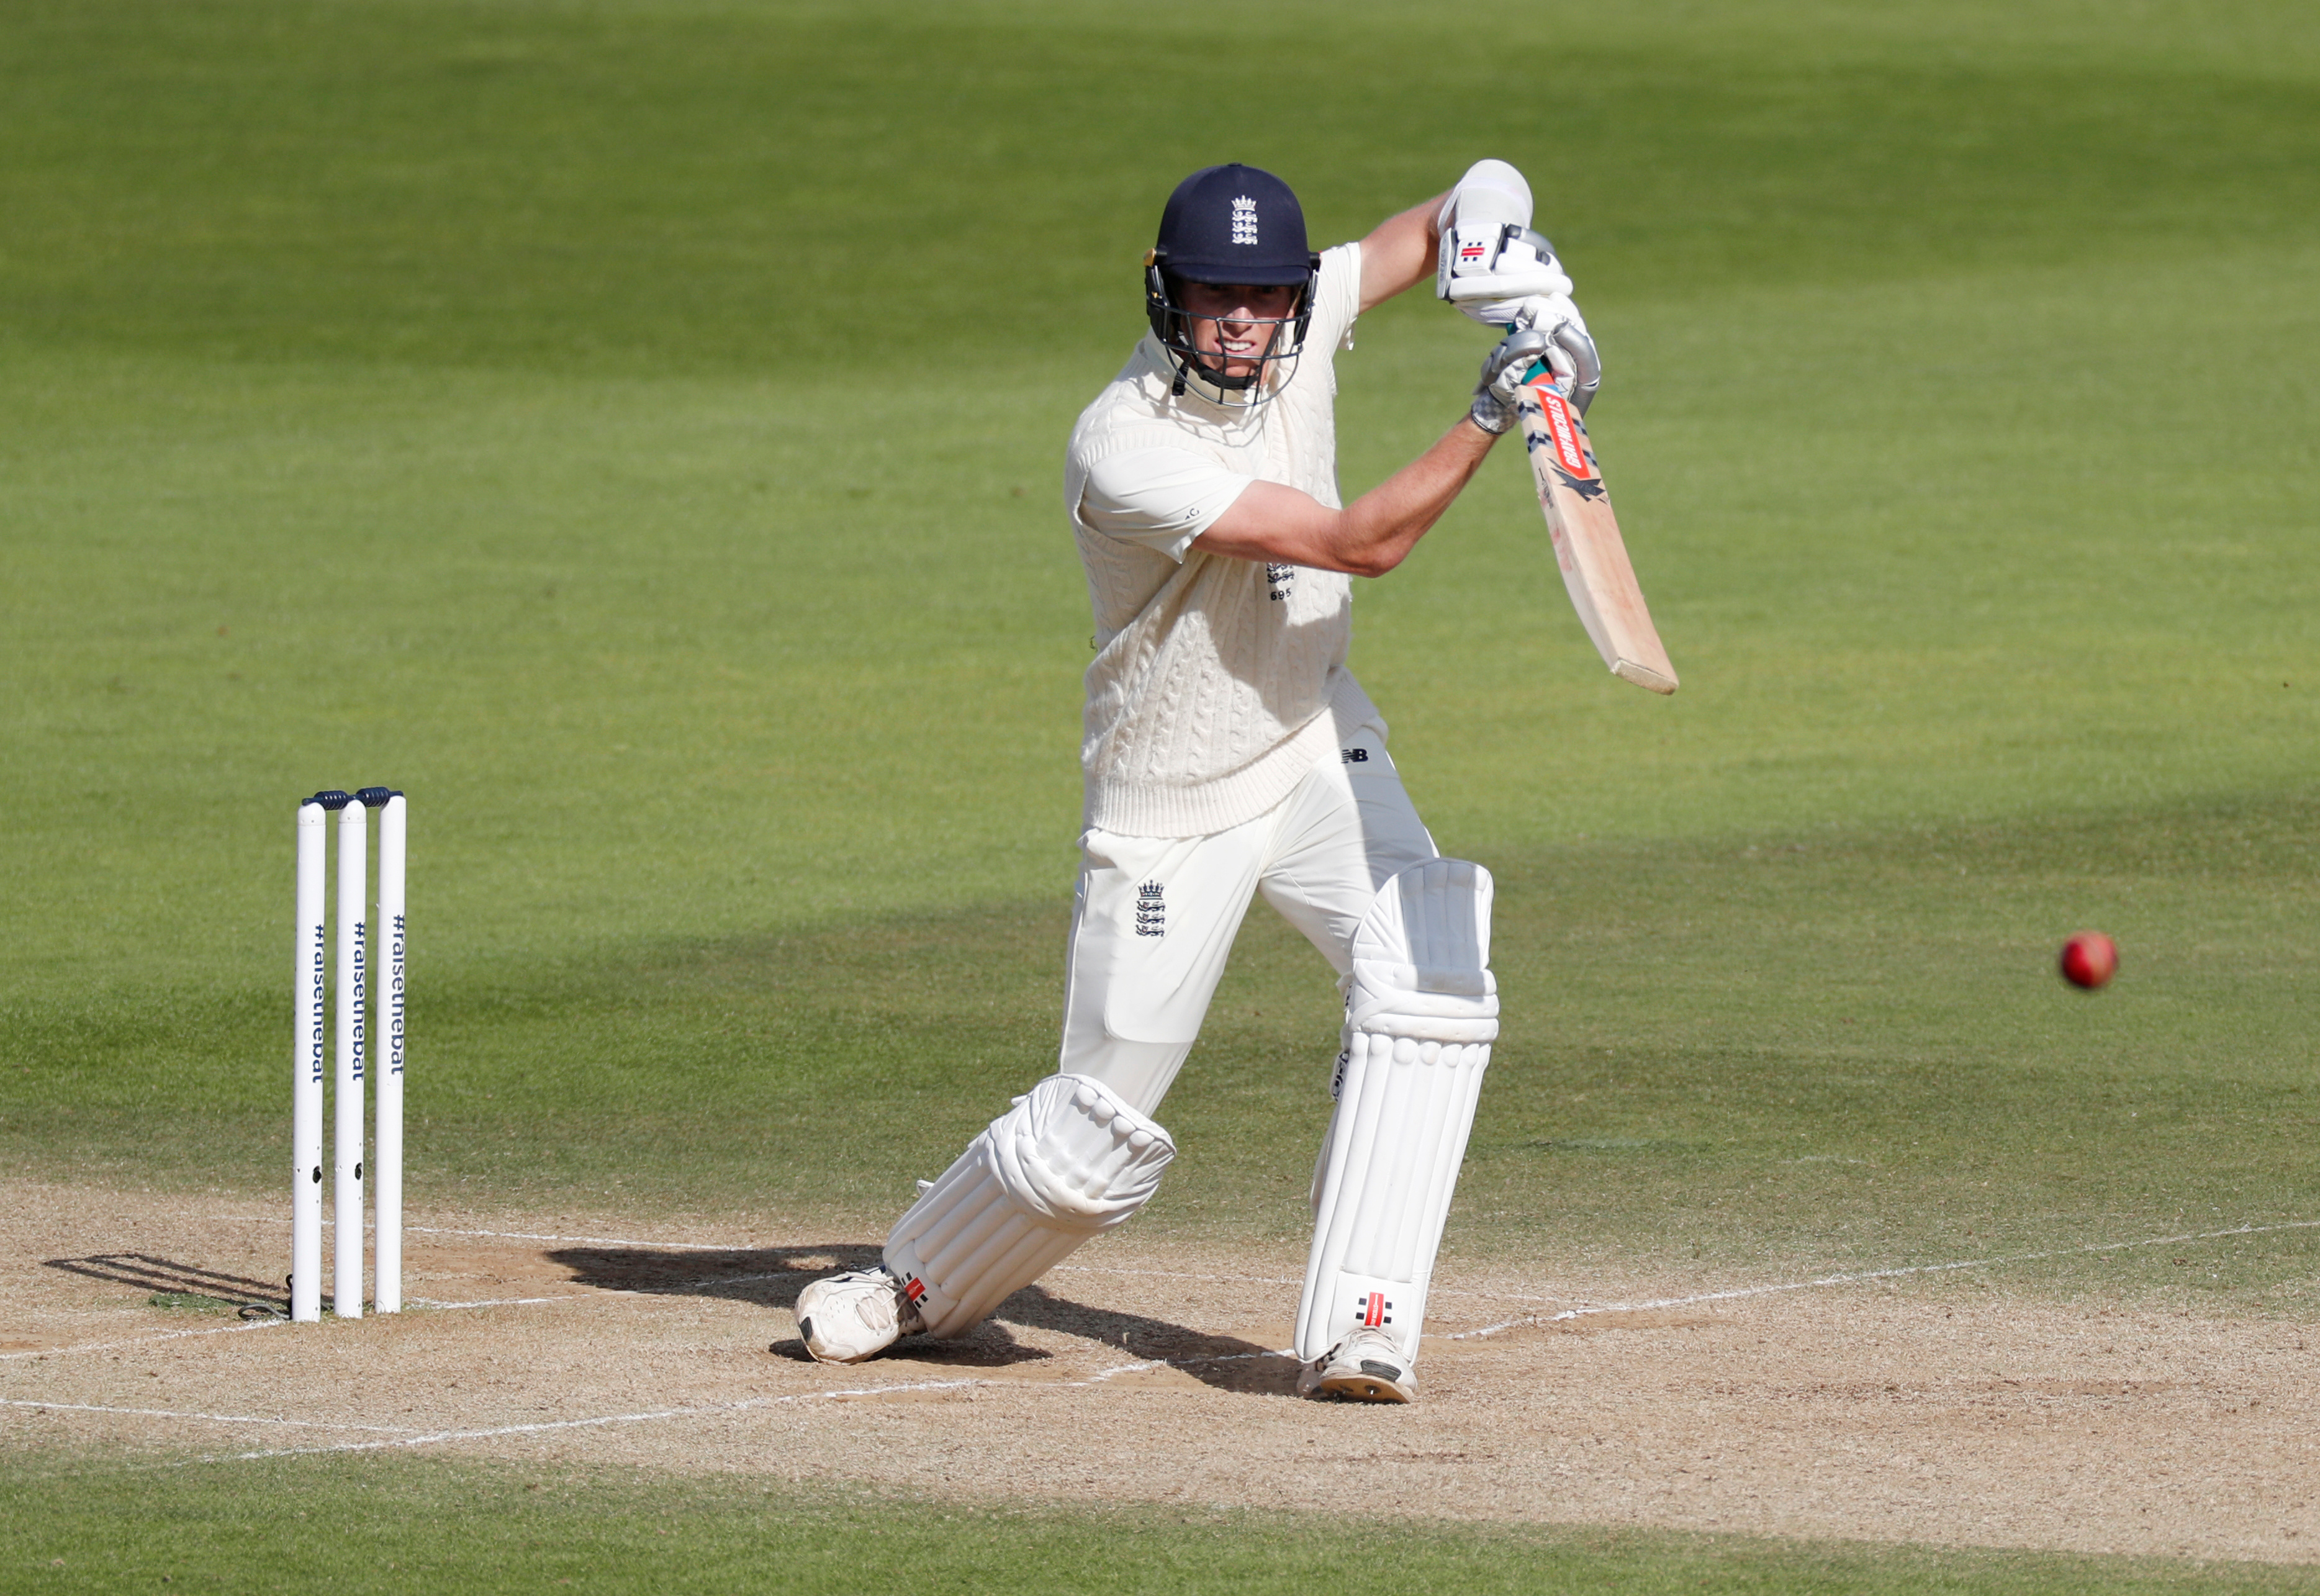 England's Zak Crawley in action. Photo: Reuters